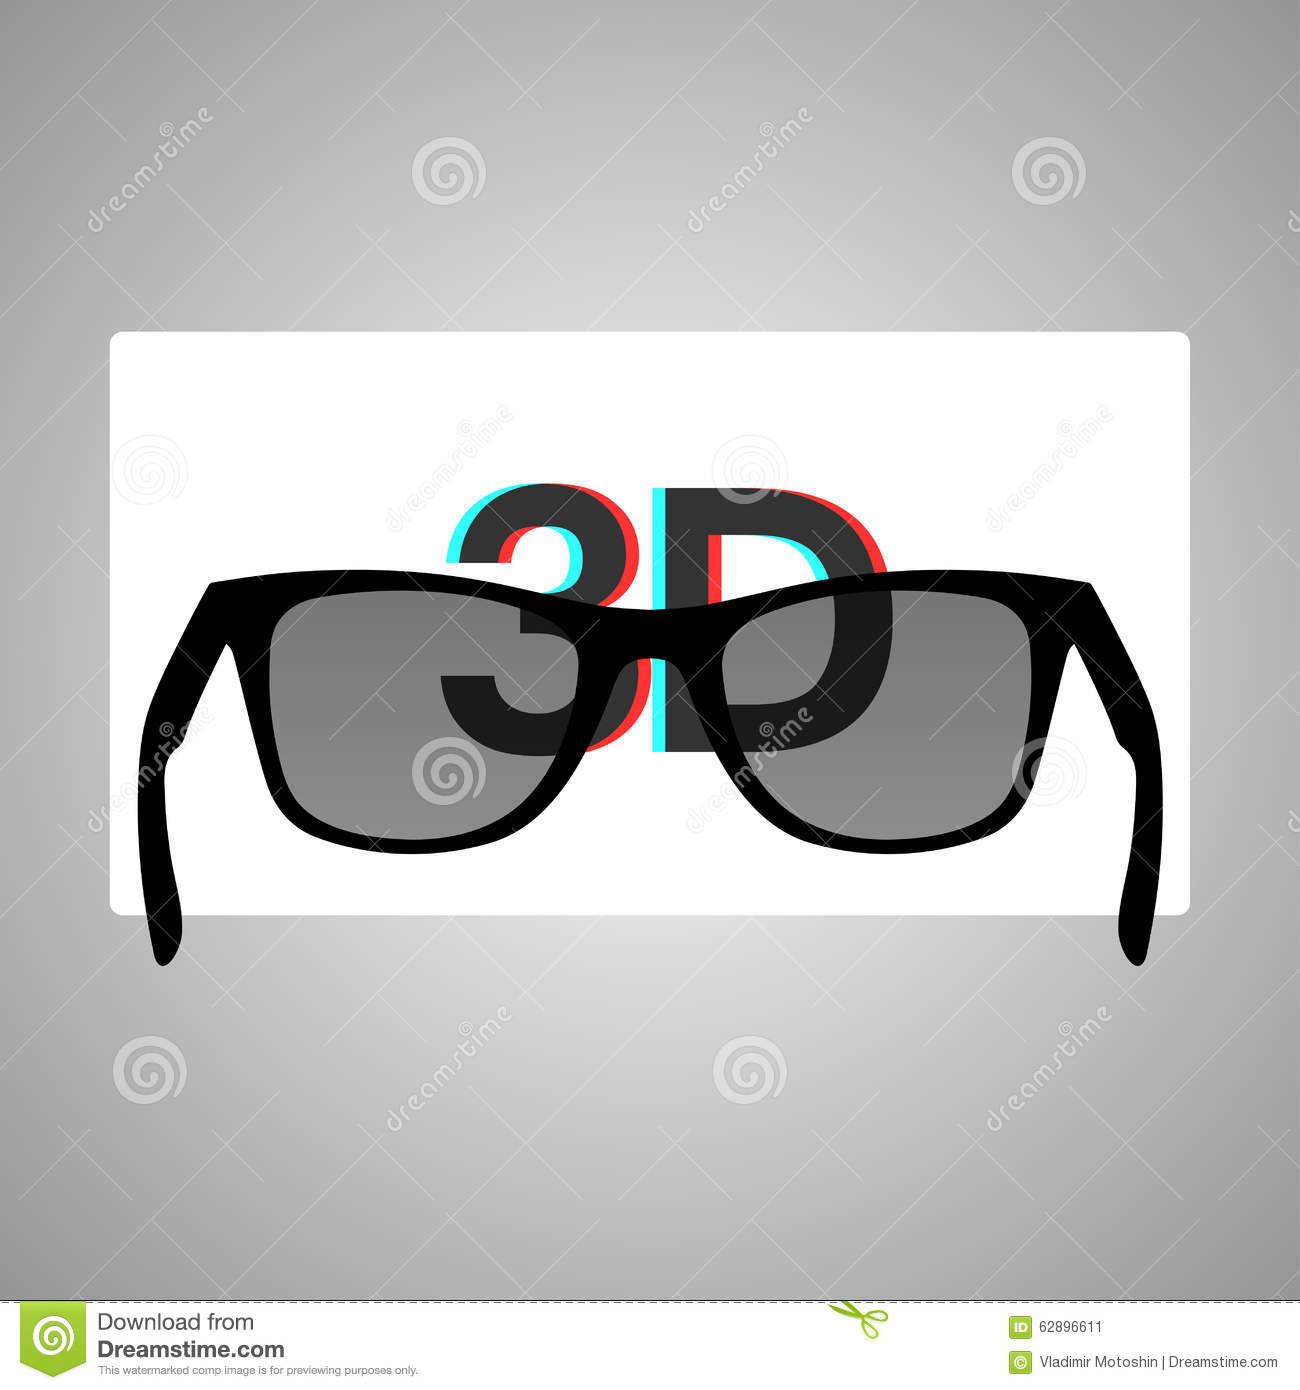 3D Glasses And A Stereo Image On A White Screen Stock ...